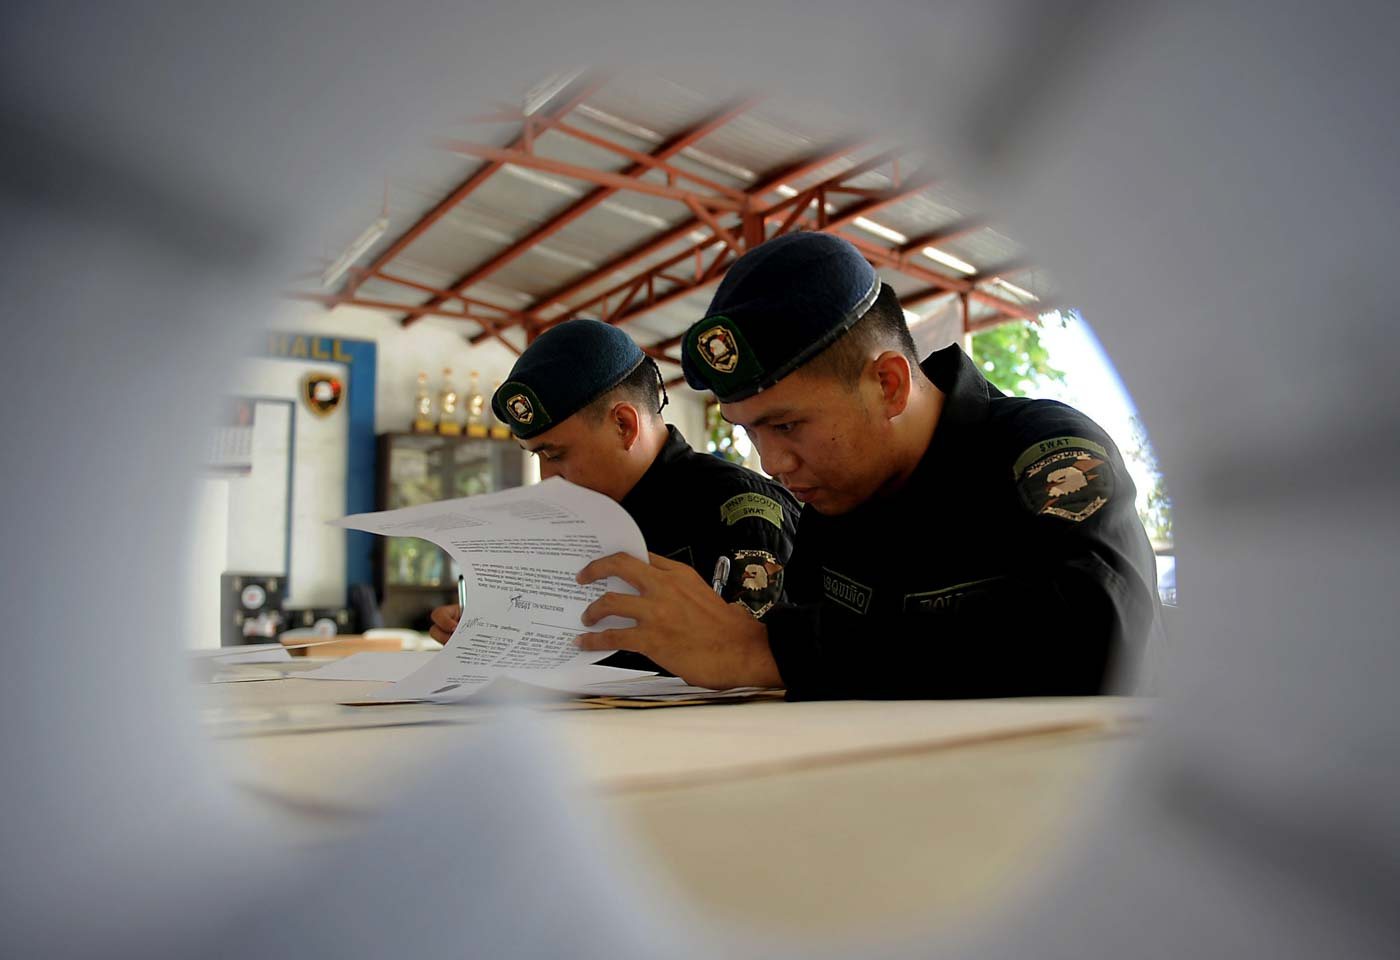 VOTING. Members of the Philippine National Police queue as they exercise their right to vote during the start of the local absentee voting at the NCRPO headquarters inside the Camp Bagong Diwa in Taguig City on Monday, April 29. Photo by Ben Nabong/Rappler